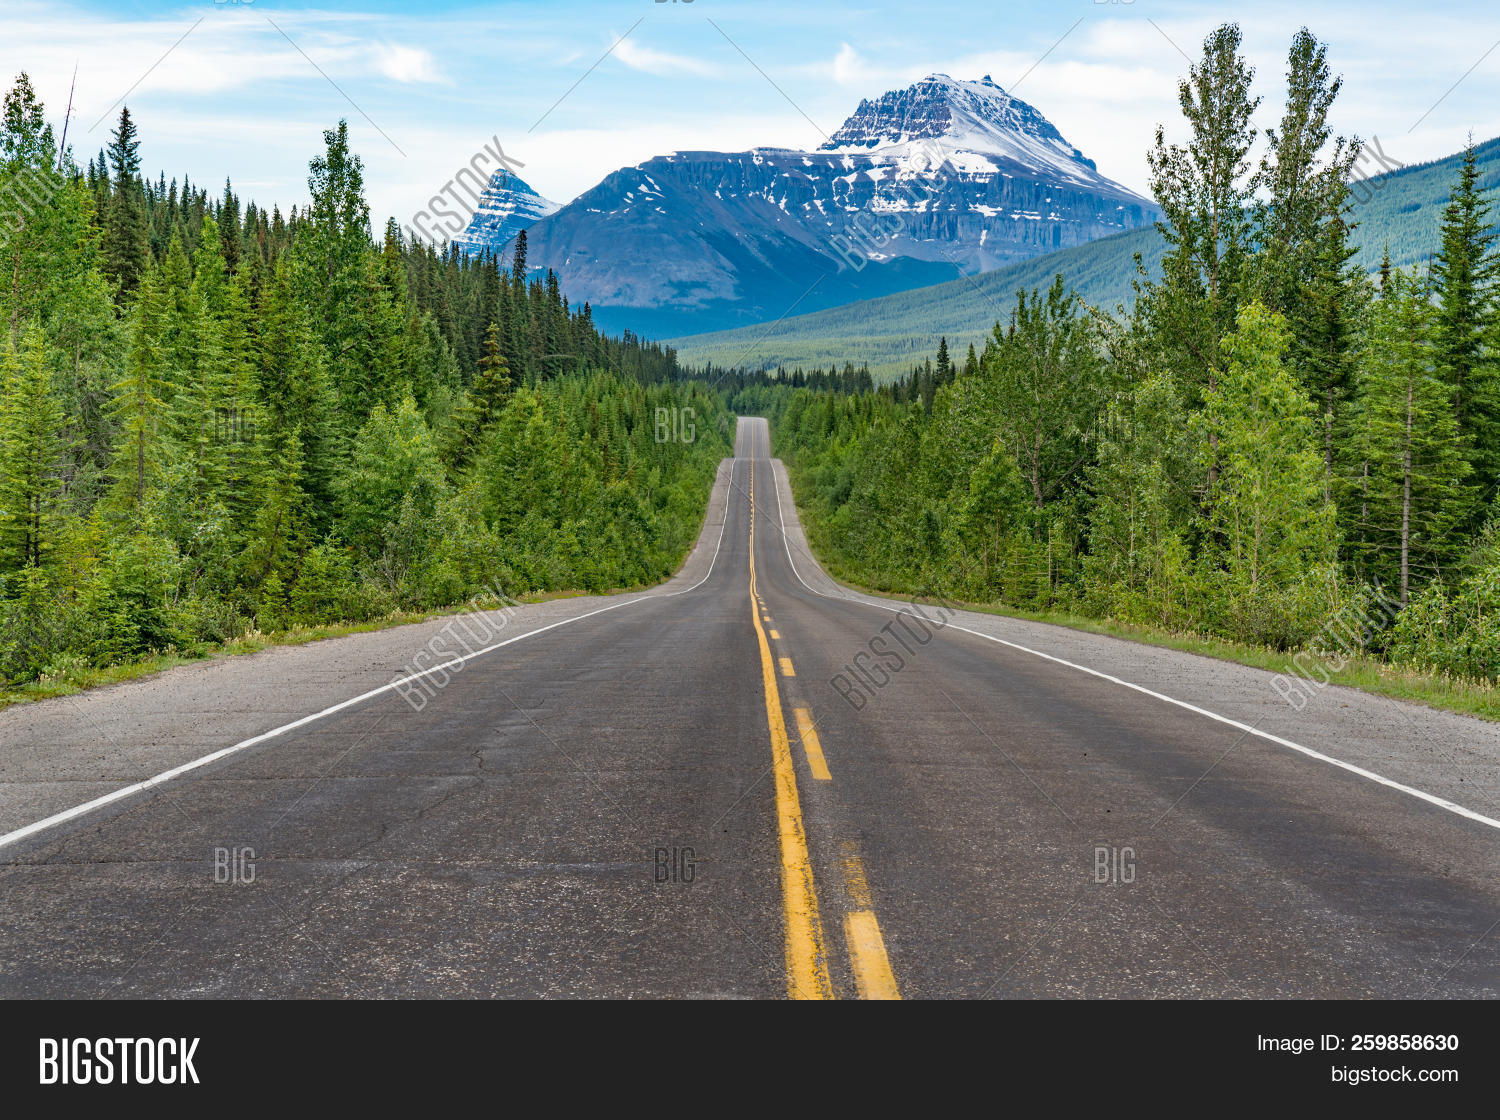 Canada Route 93 On Image & Photo (Free Trial) | Bigstock